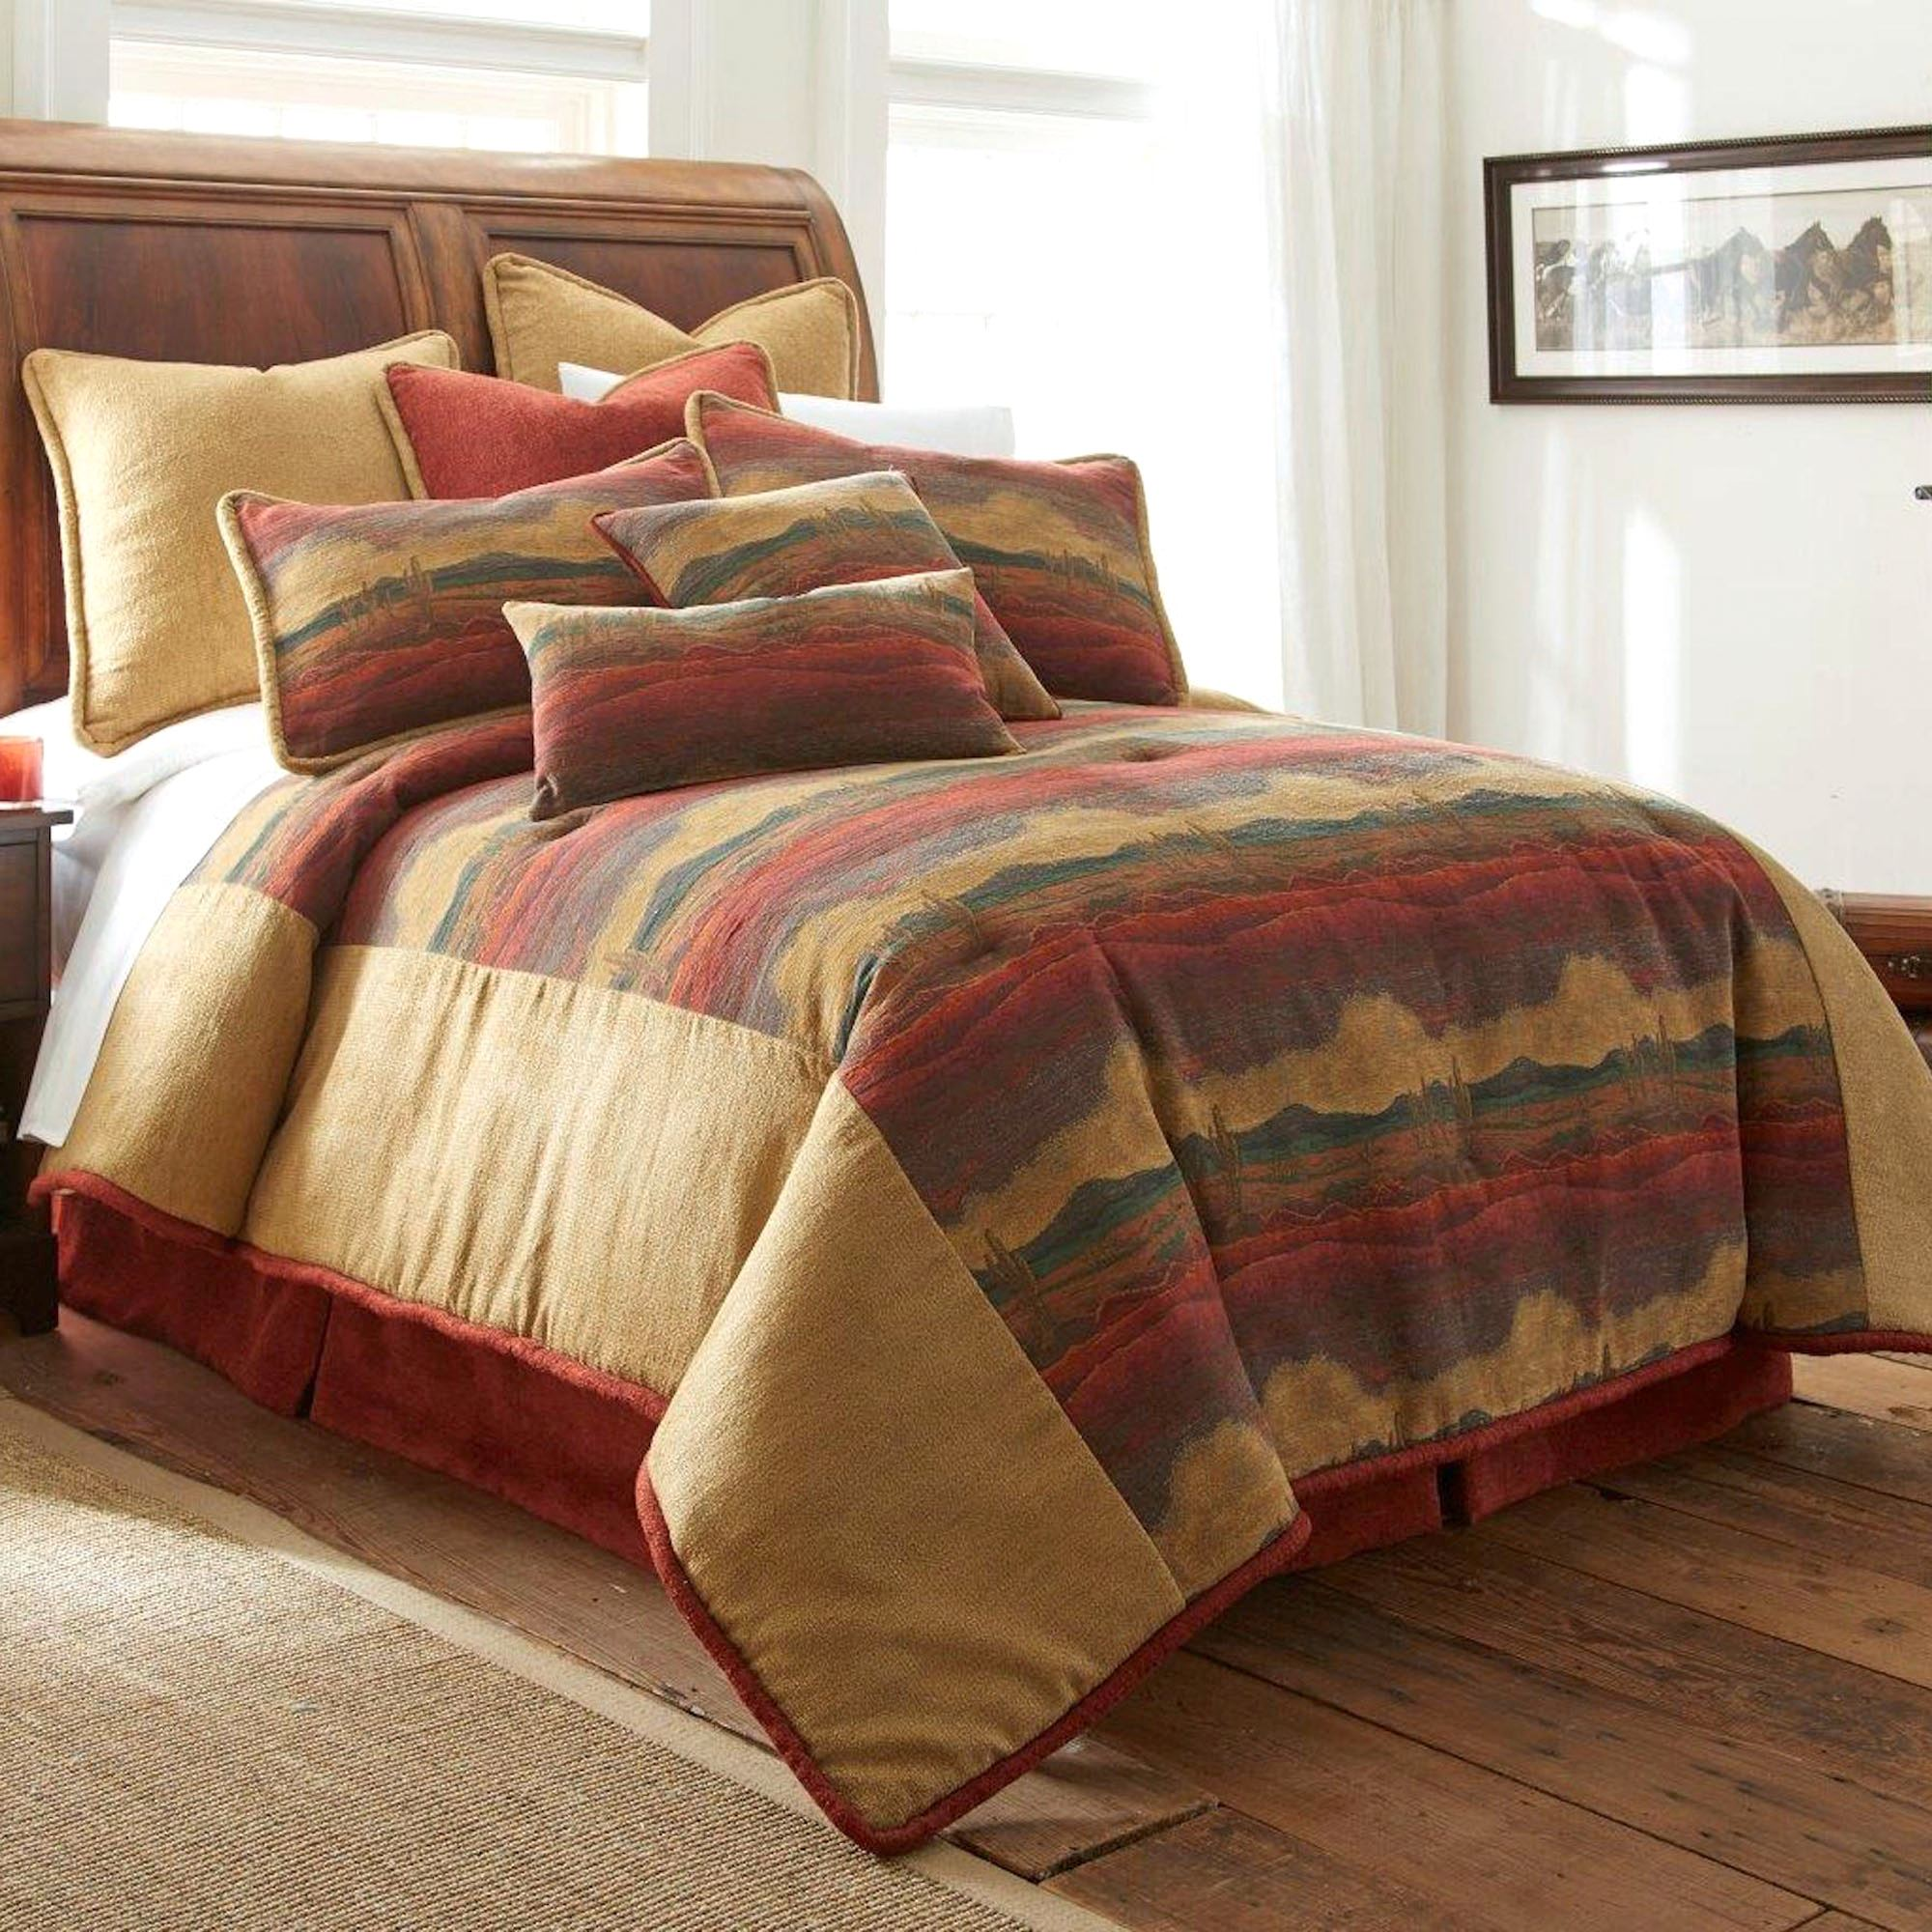 Free Furniture Austin: Desert Sunset Southwest Mini Comforter Set By Austin Horn